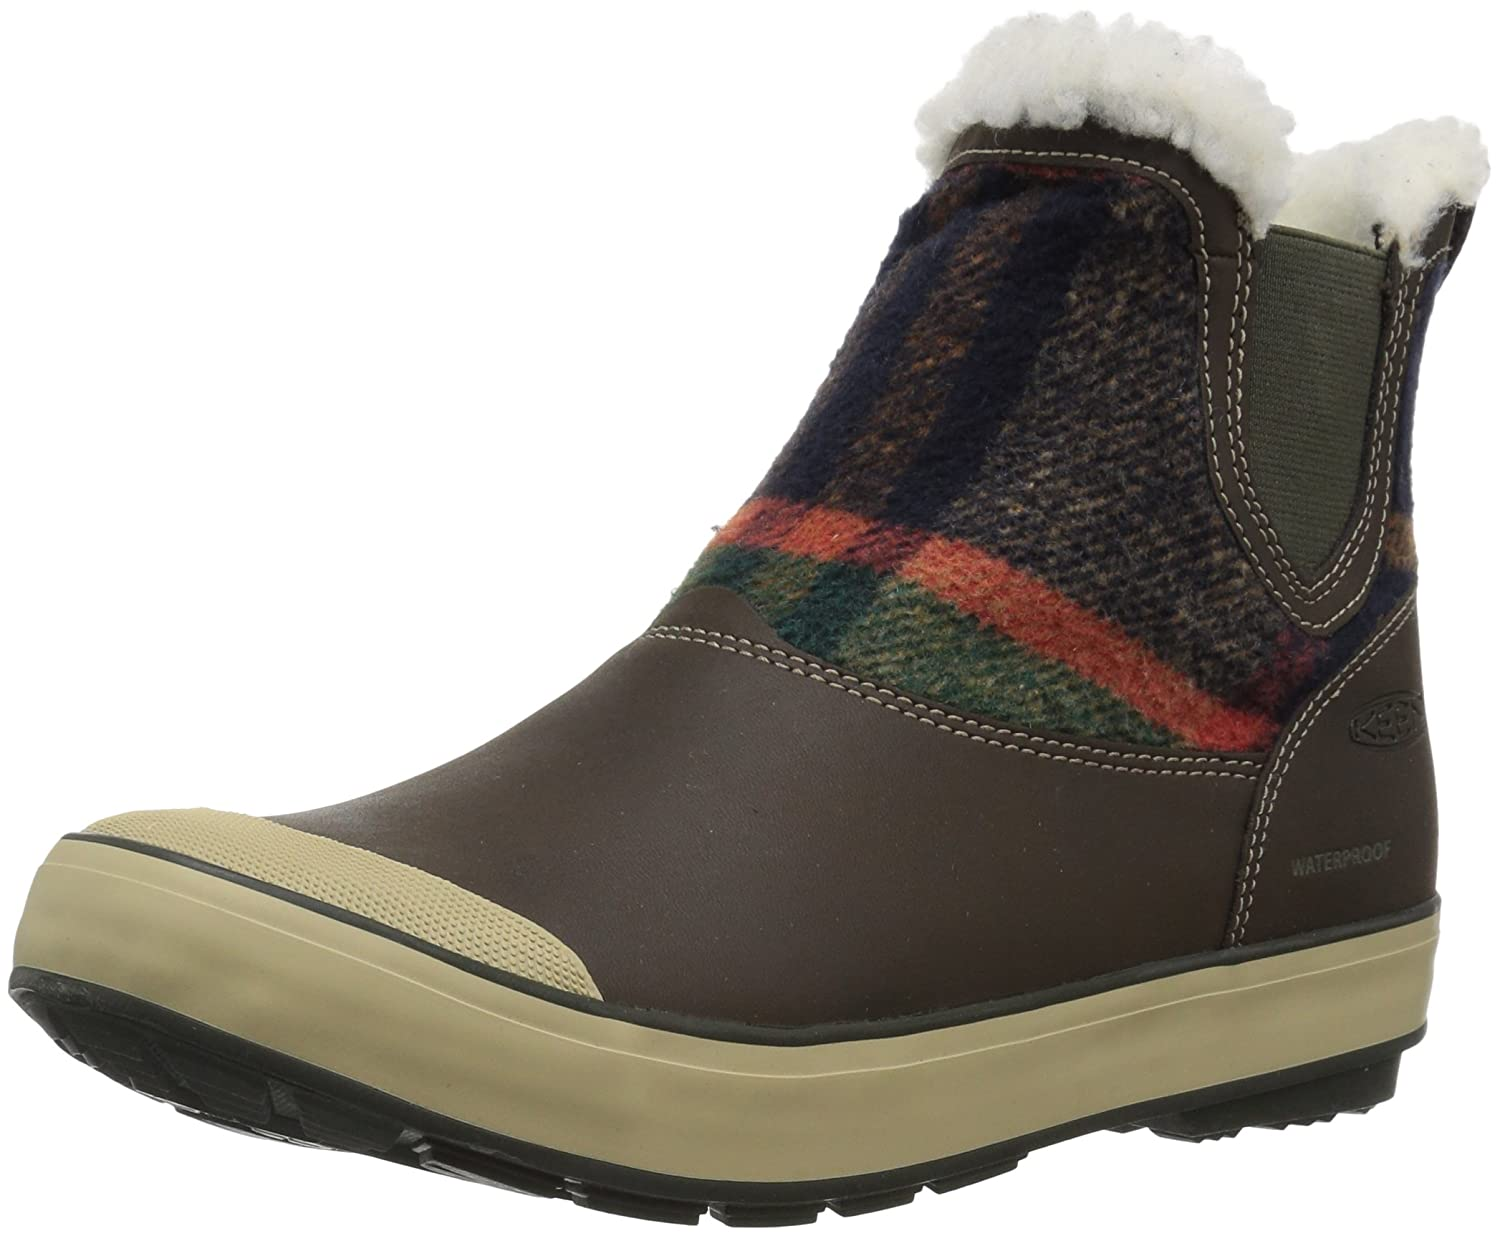 KEEN Women's Elsa Chelsea Waterproof Boot B01N76CKG4 7 B(M) US|Coffee Bean Wool